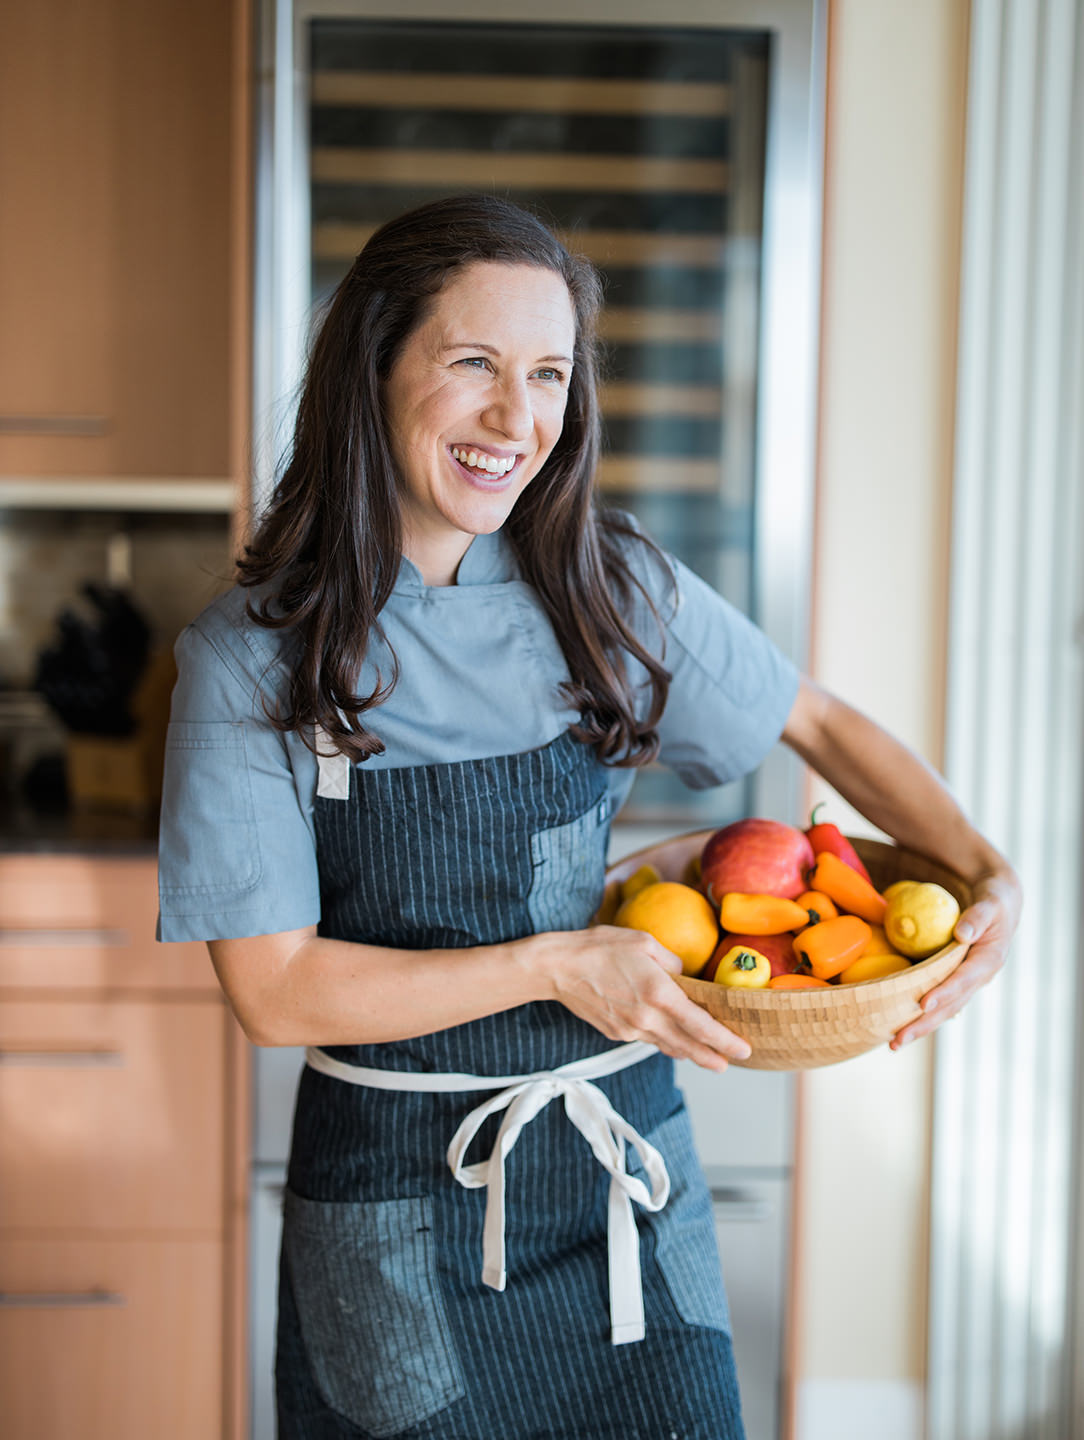 Tiffany Thomas, NC, E-RYT200, Private Chef